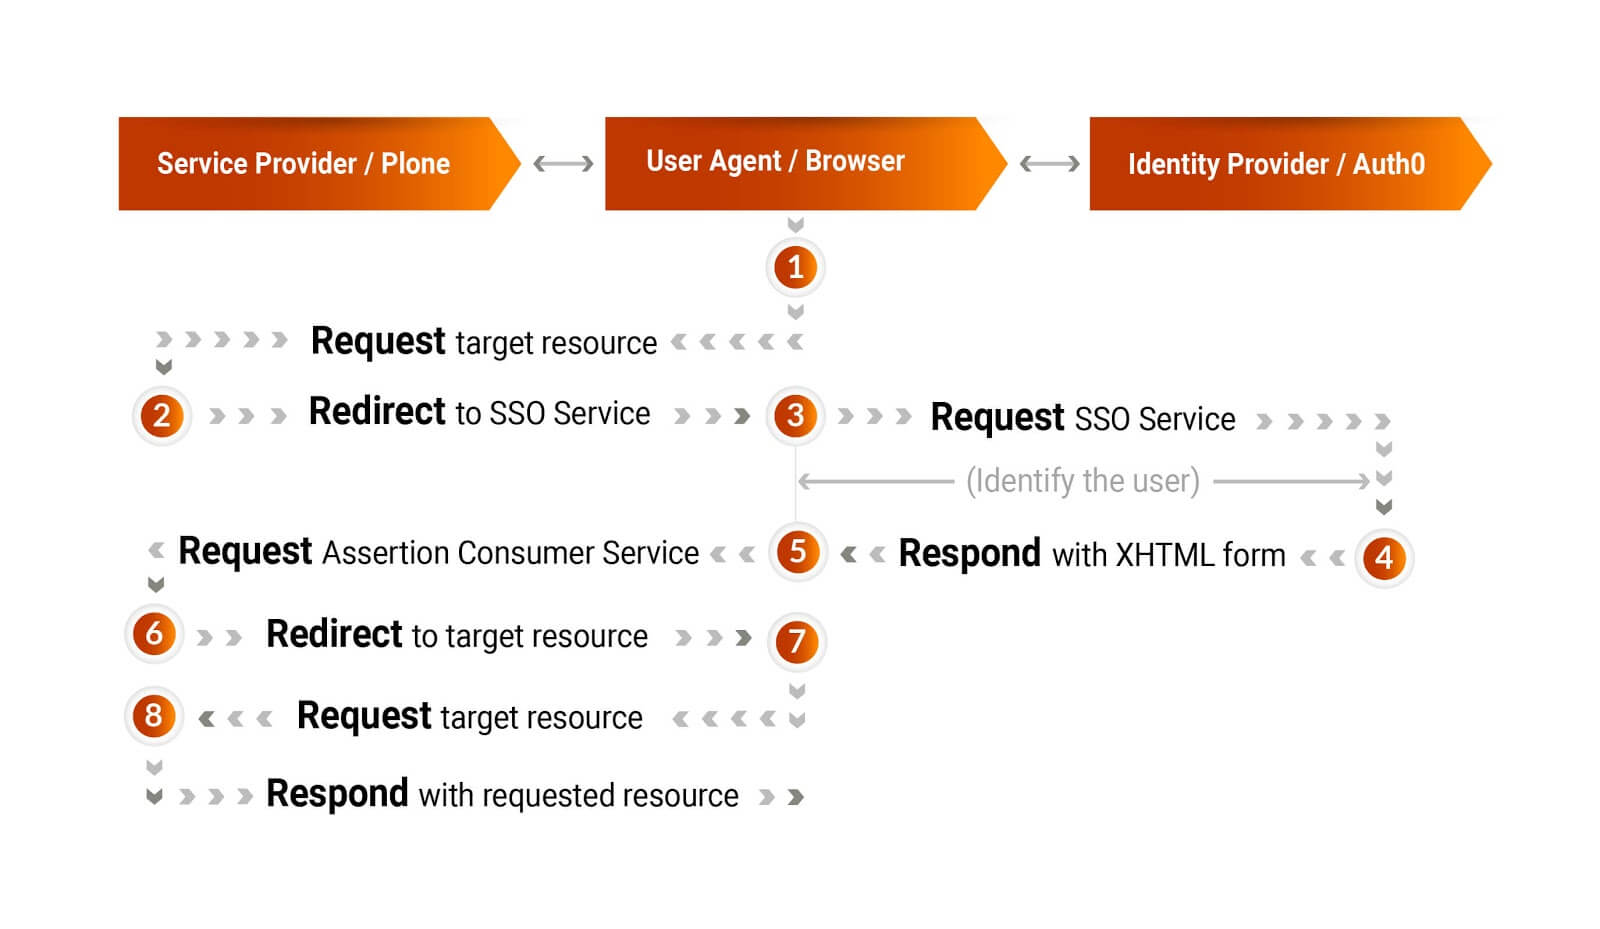 SAML2 workflow for service provide, user agent and identity provider